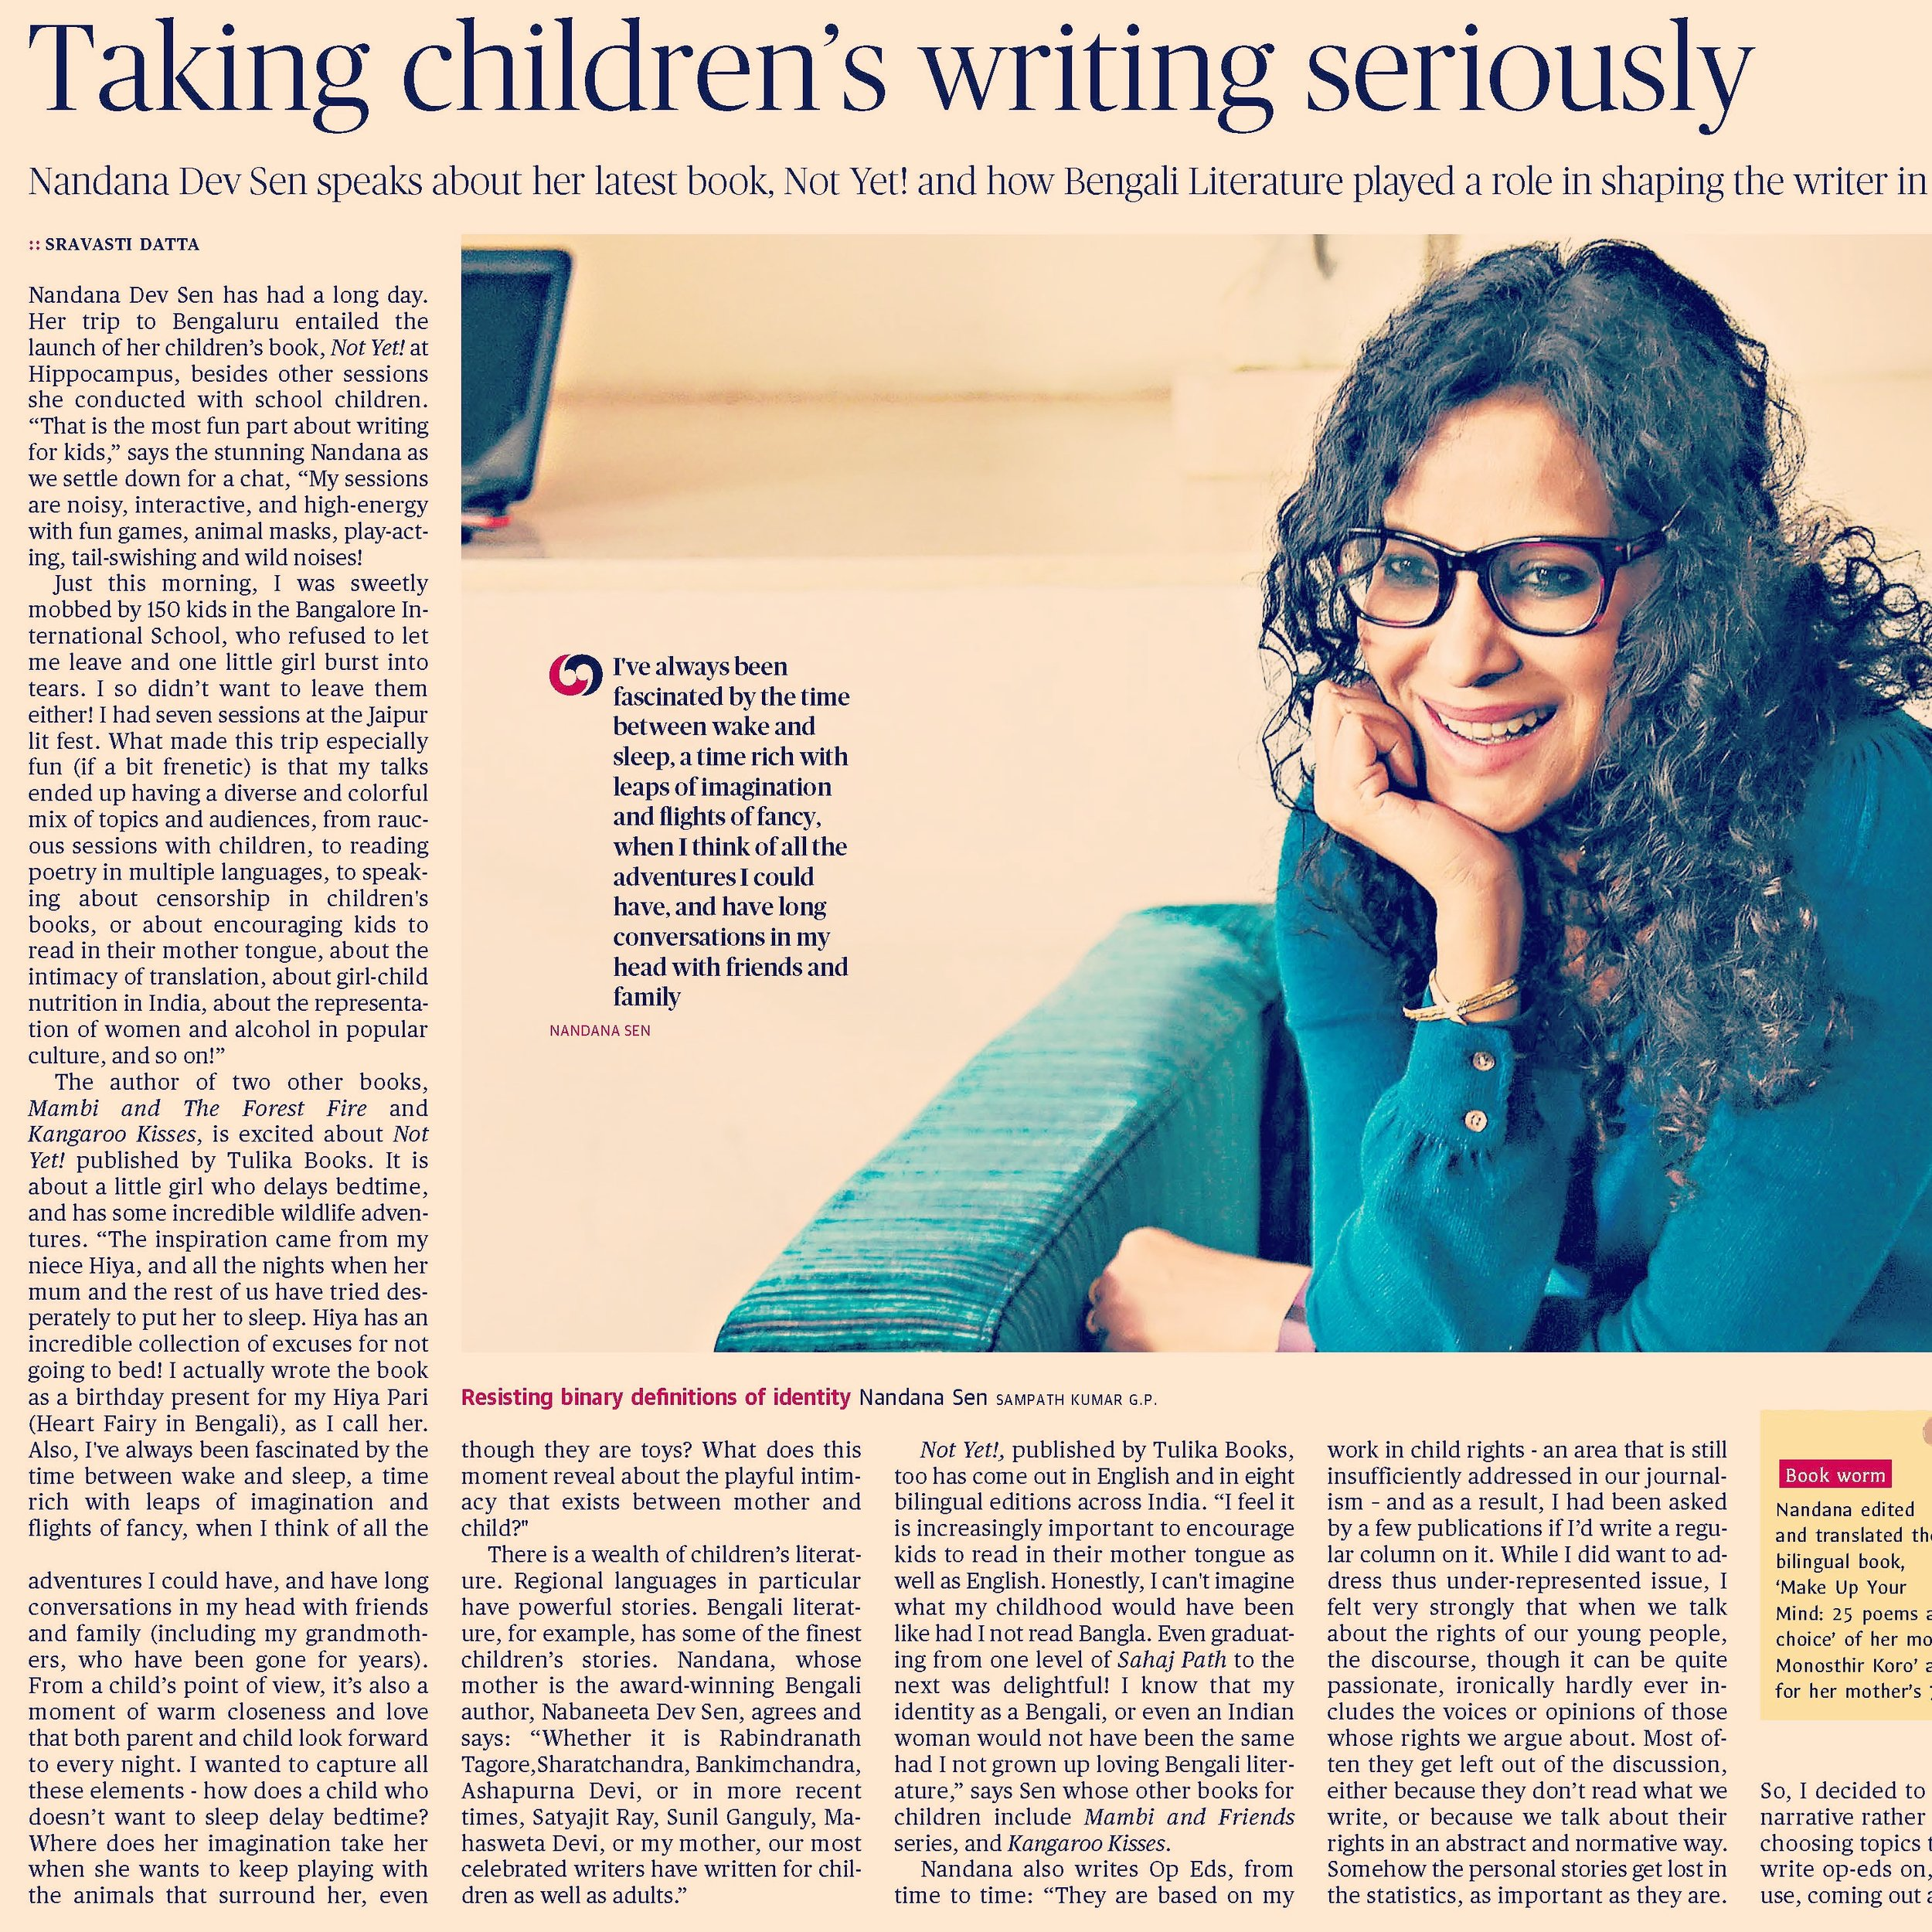 The Hindu  https://www.thehindu.com/books/books-authors/taking-childrens-writing-seriously/article17367150.ece    February 25, 2018